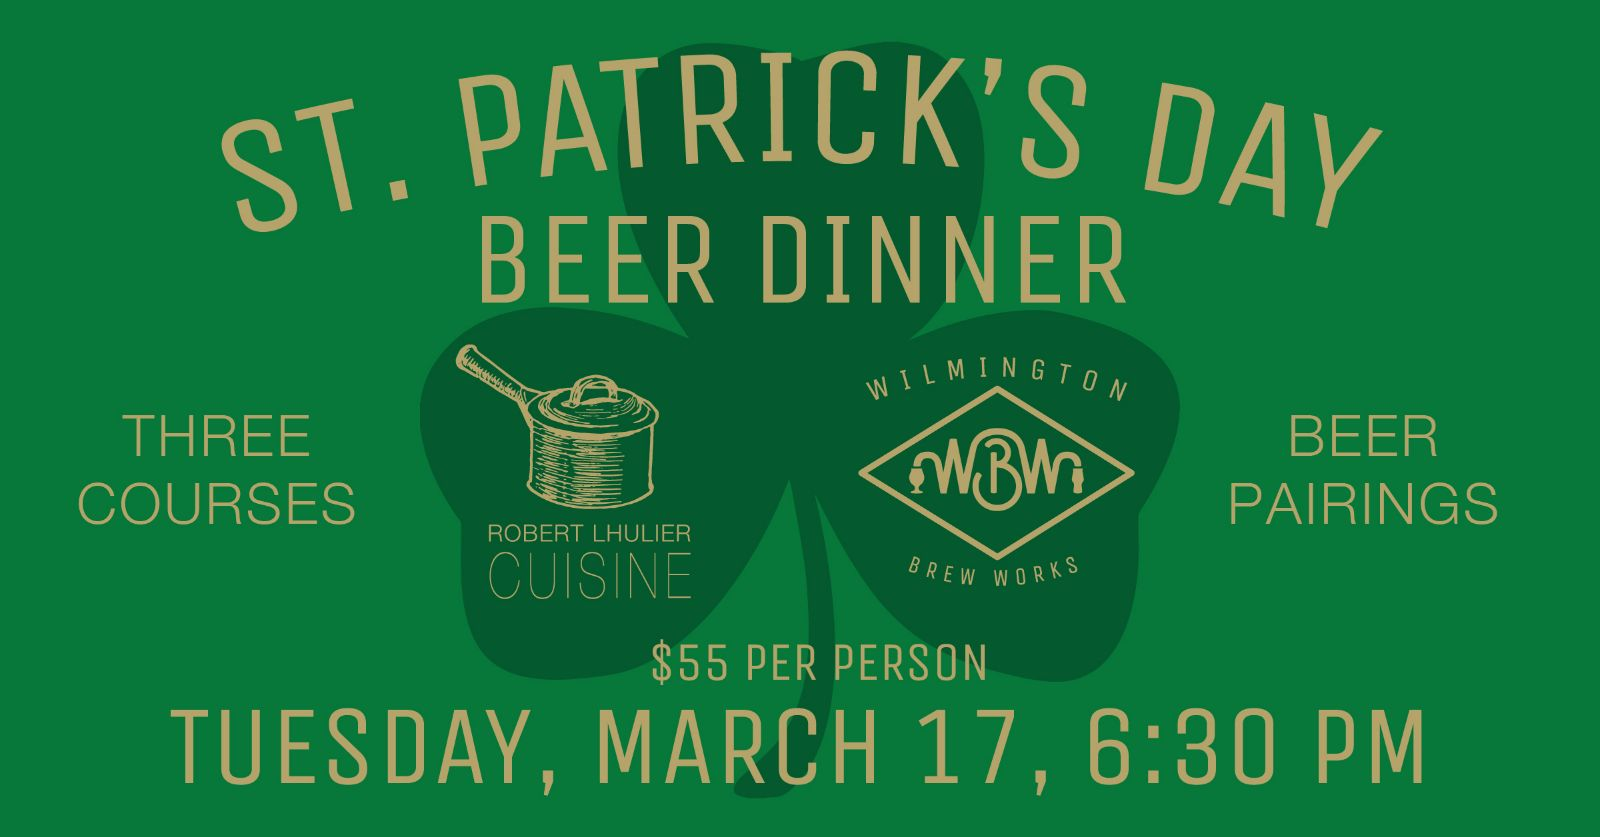 St. Patricks Day Beer Dinner at Wilmington Brew Works